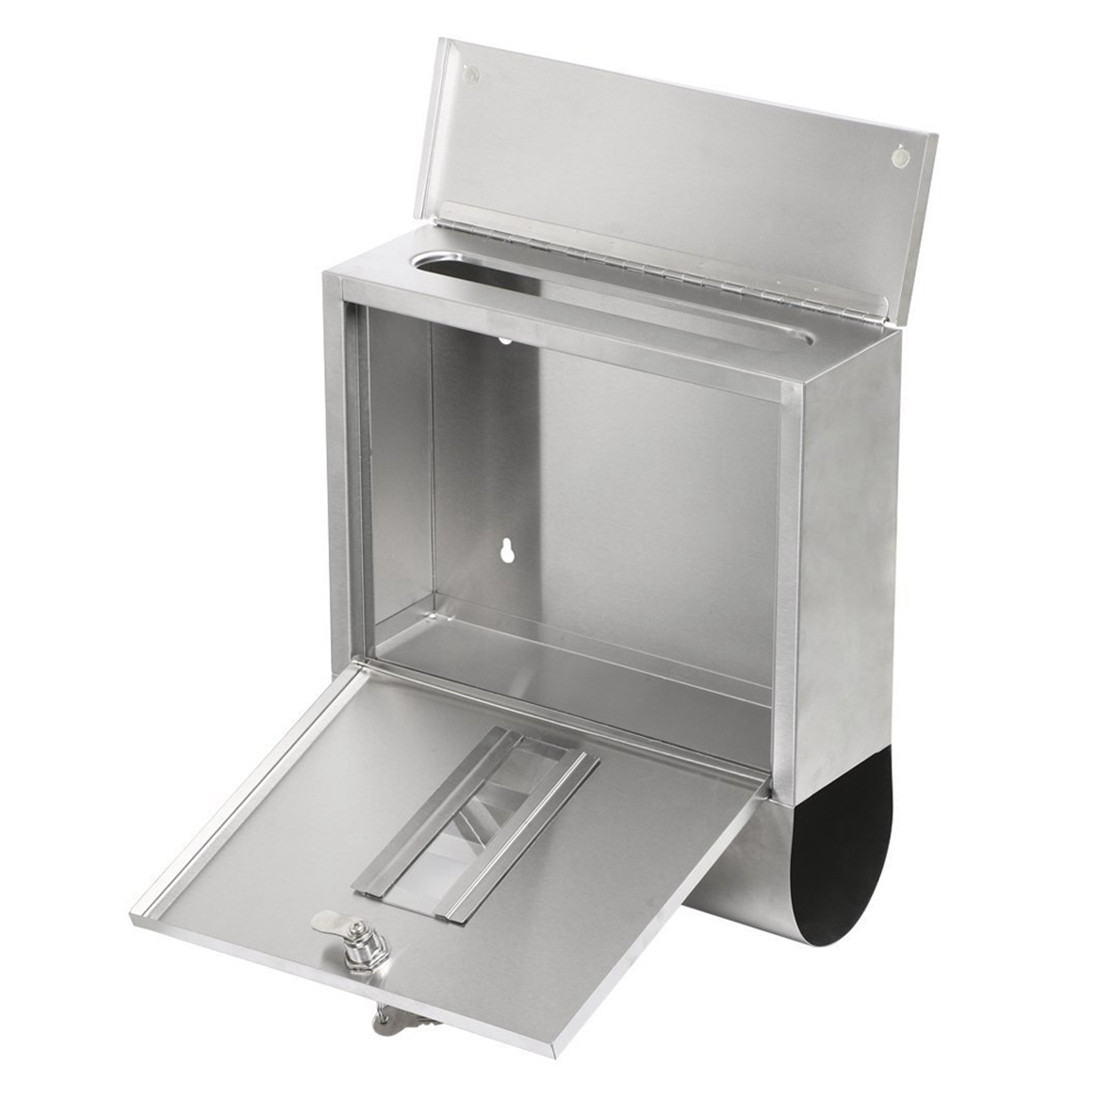 Practical Waterproof Stainless Steel Lockable Mailbox Newspaper Holder Outdoor Mail Post Letter Box